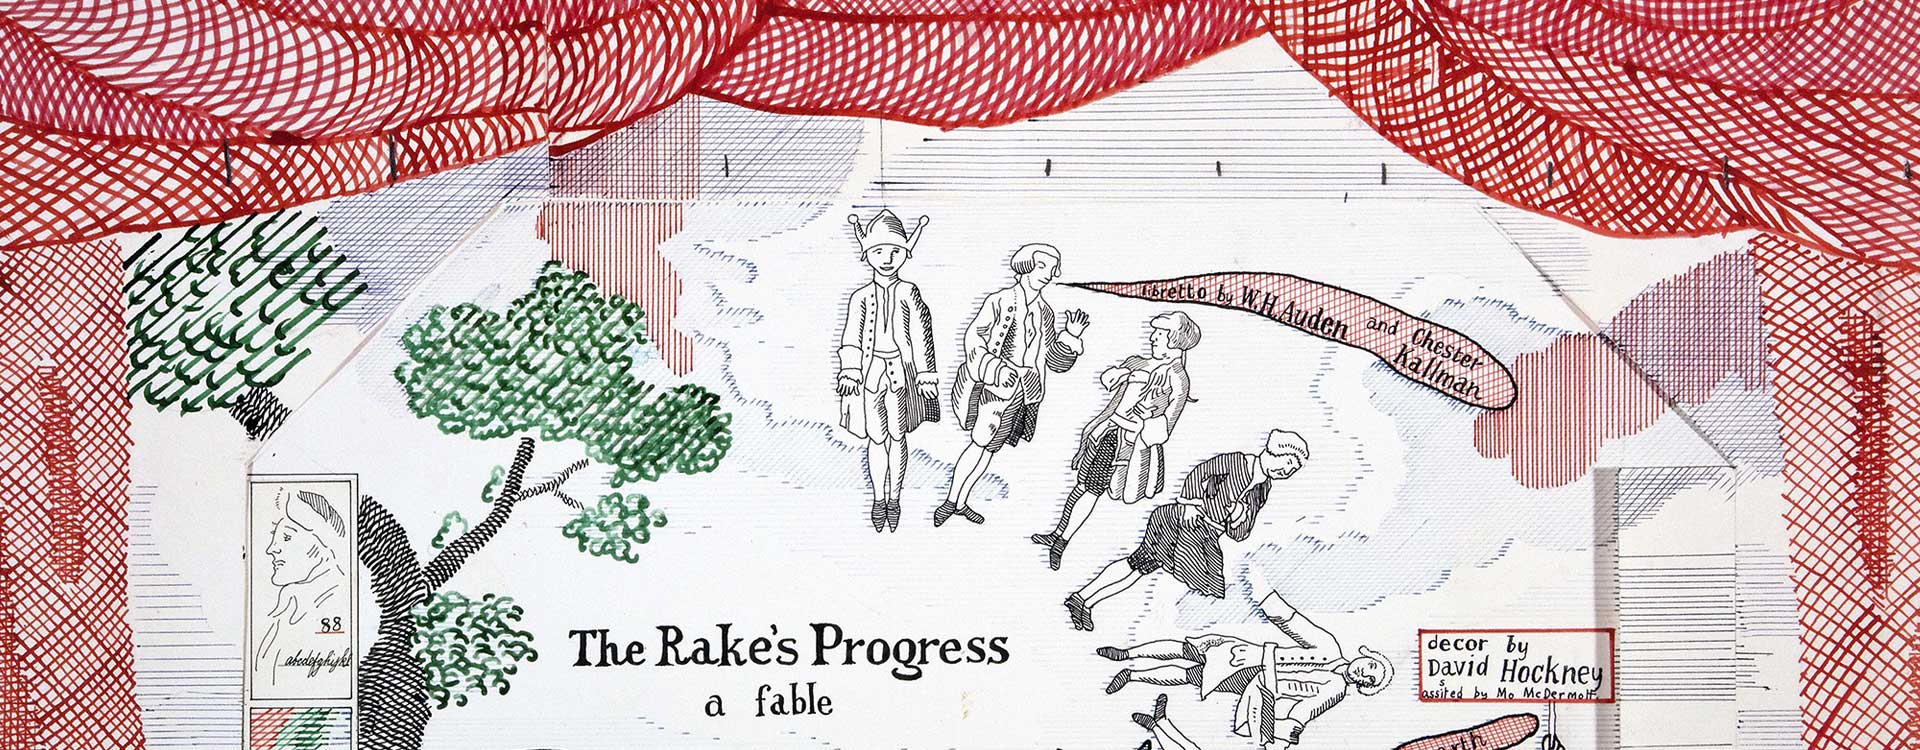 The Rake's Progress Collection by David Hockney